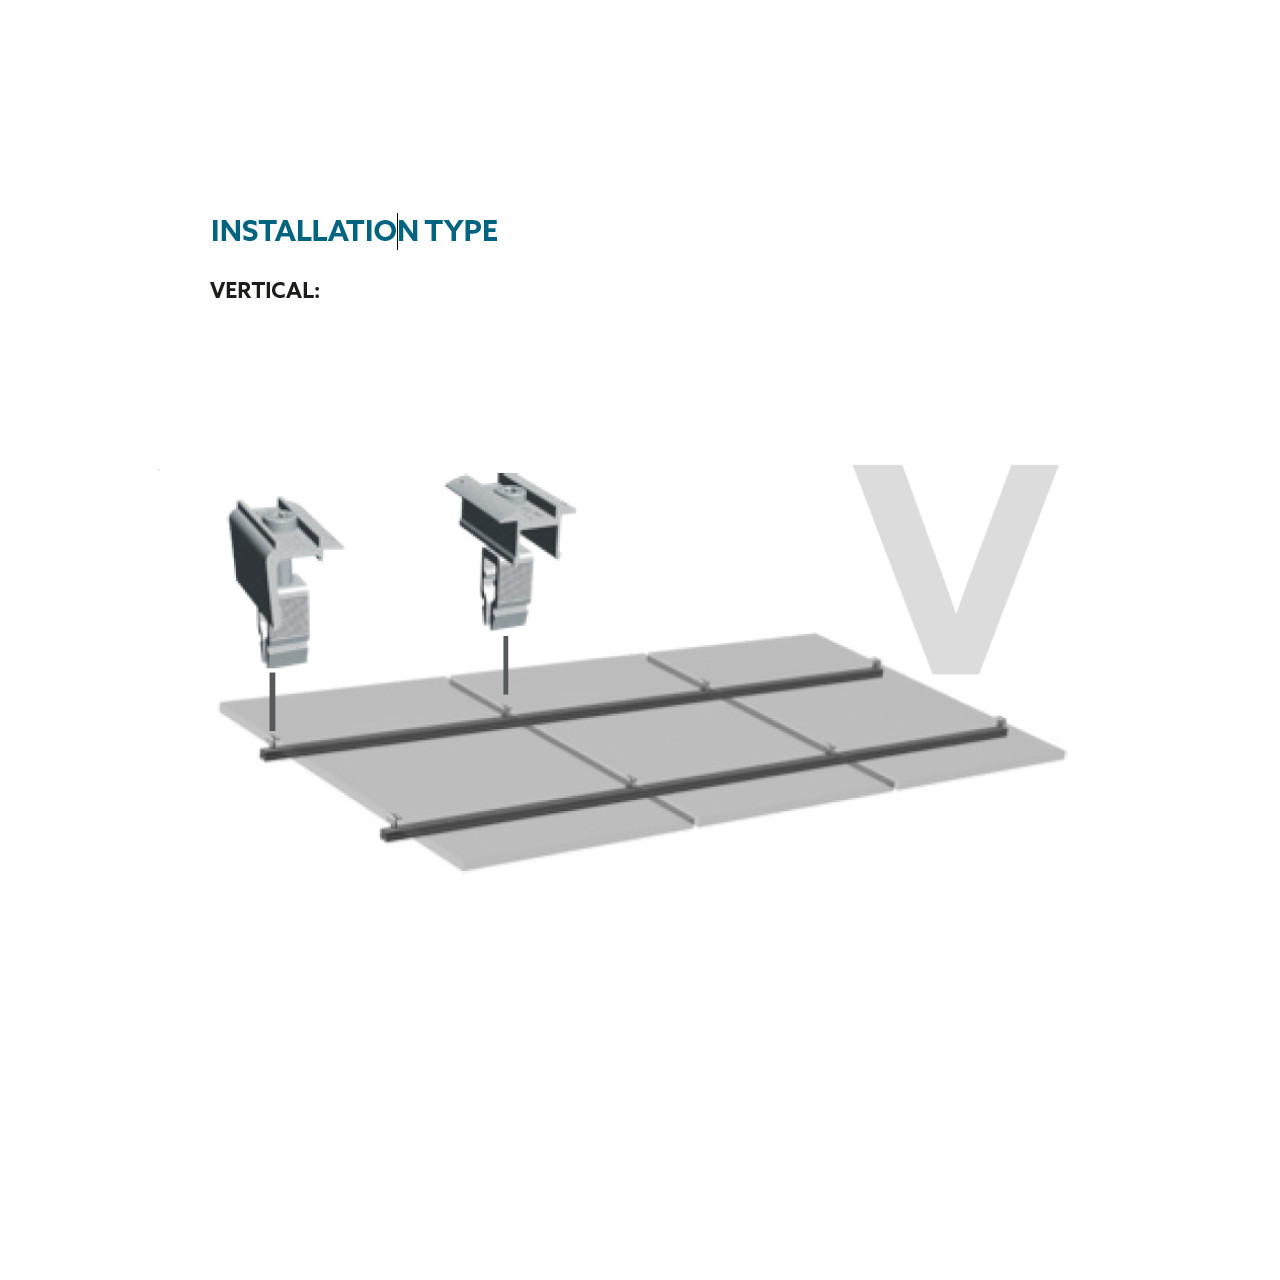 Schletter - Rapid16 End Clamp - Install Vertical